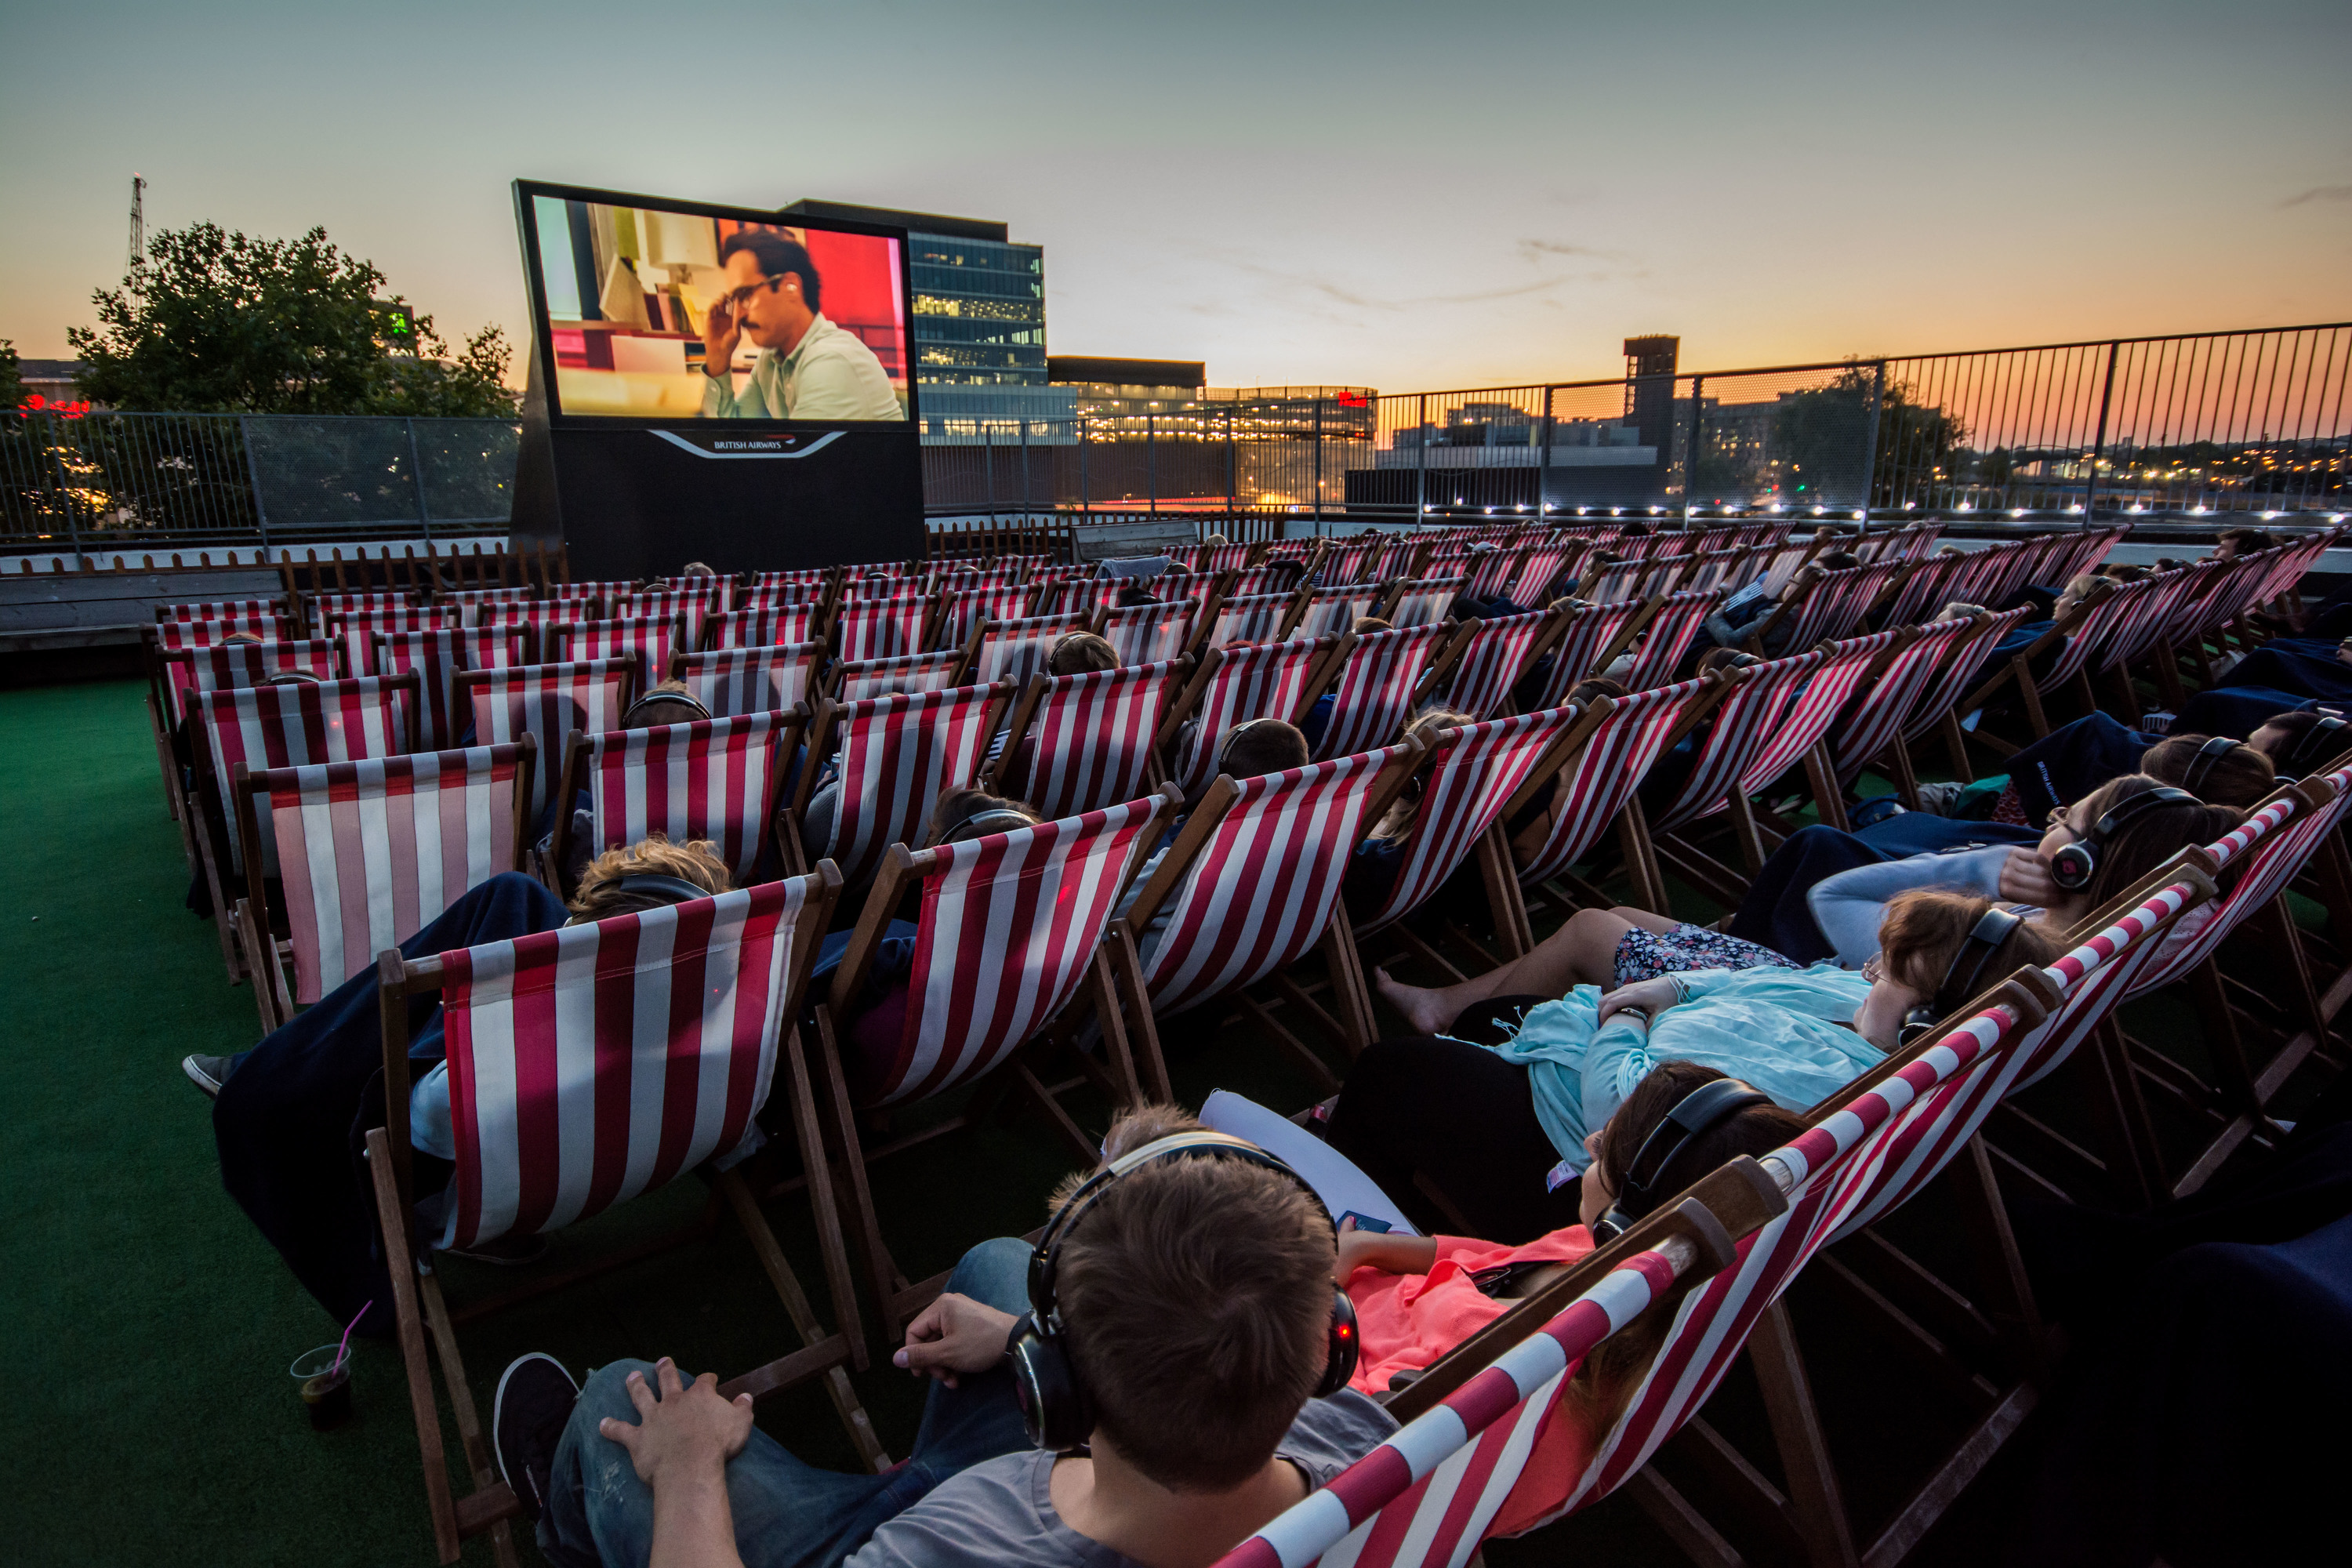 Movies in the park and outdoor screenings